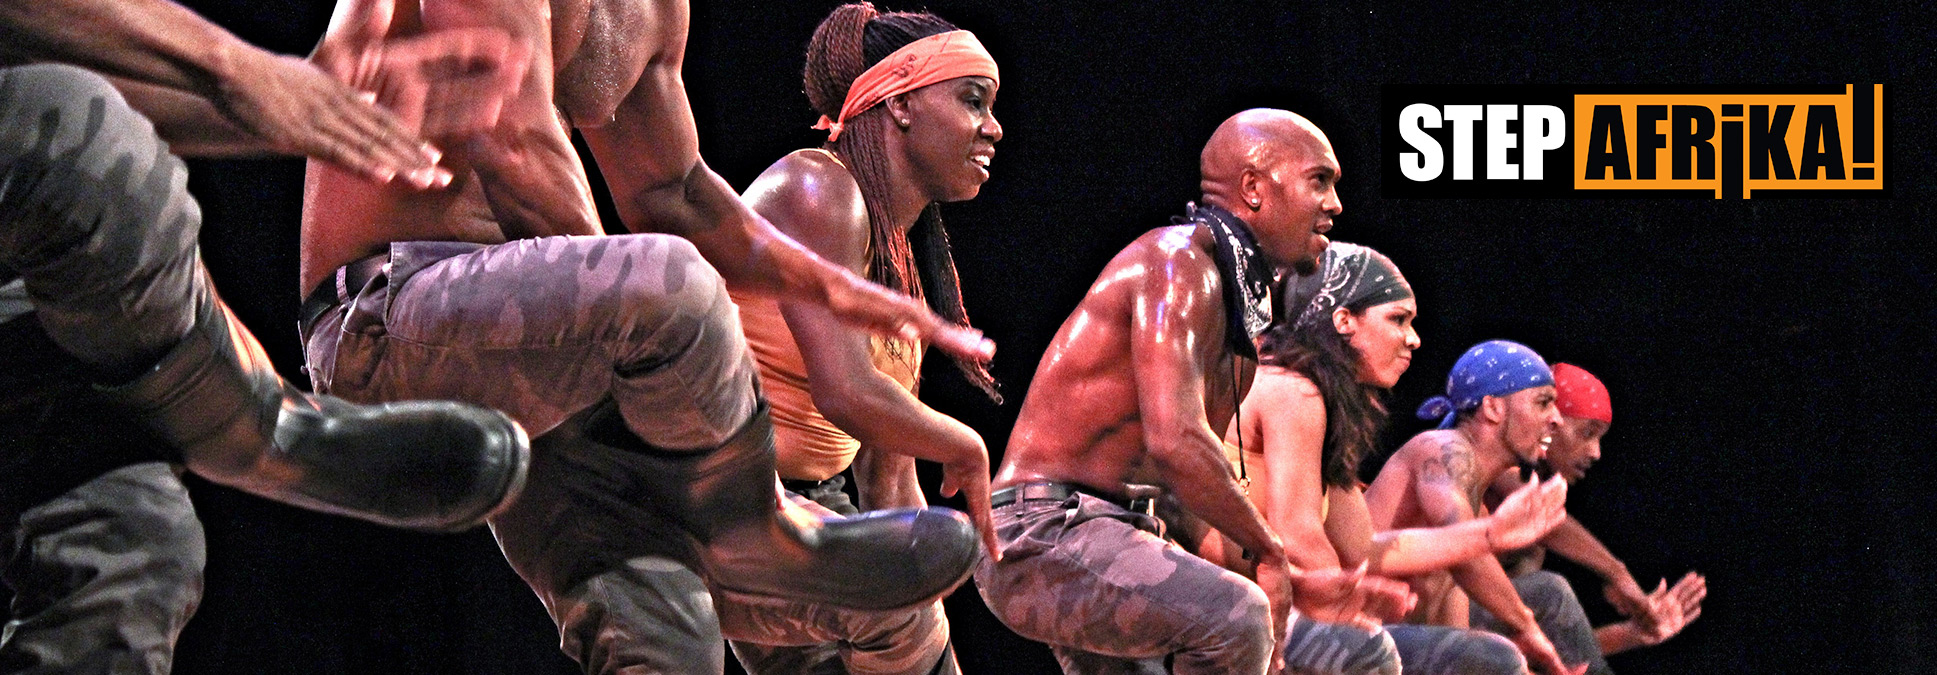 Step Afrika at the Marcus Center in Milwaukee